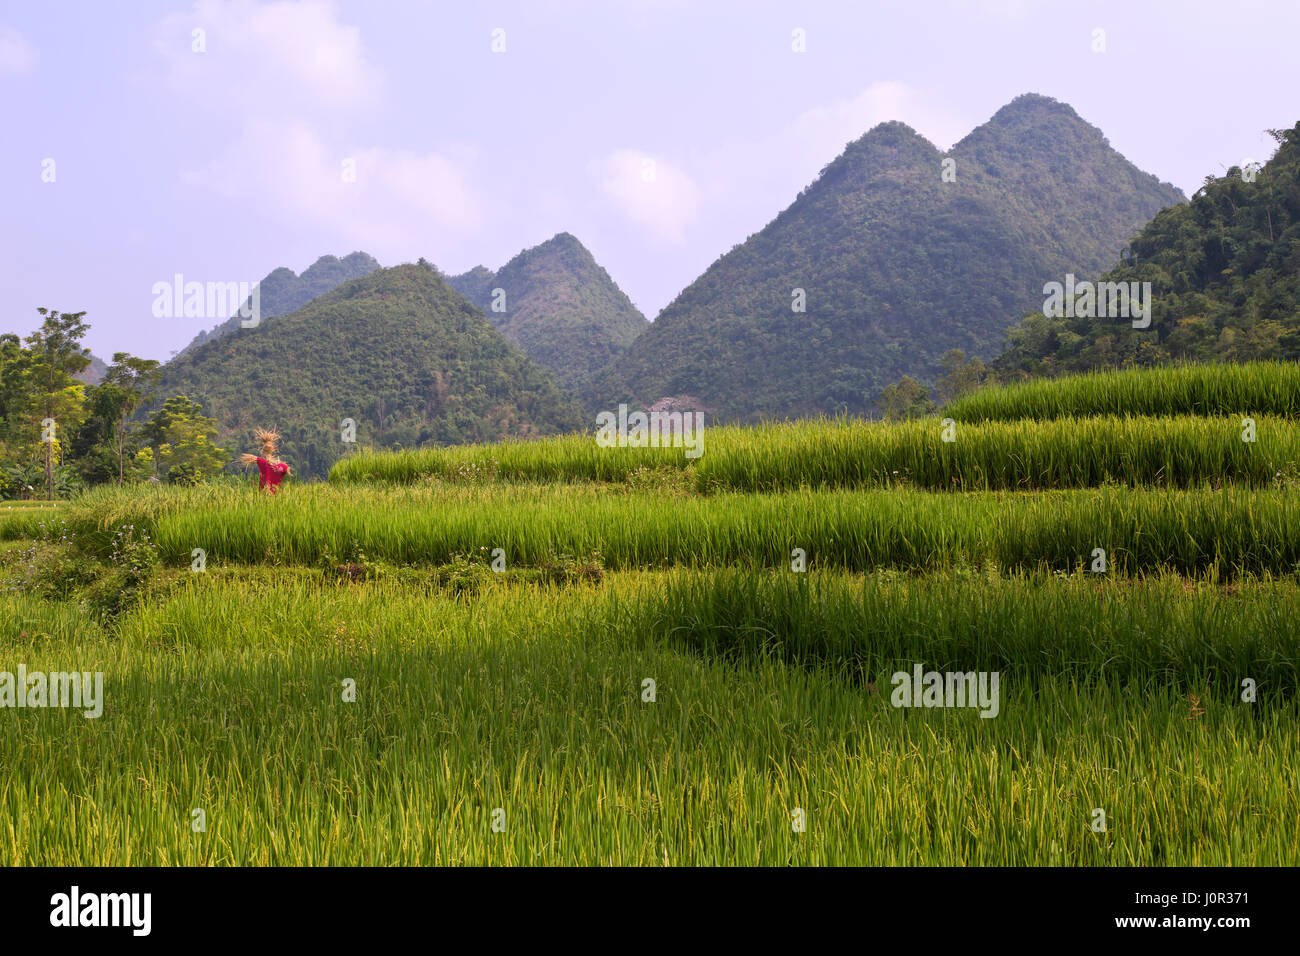 Maturing terraced rice fields, scarecrow overlooking,  Muong Thanh, Dien Bien Province, Vietnam, Indochina. - Stock Image